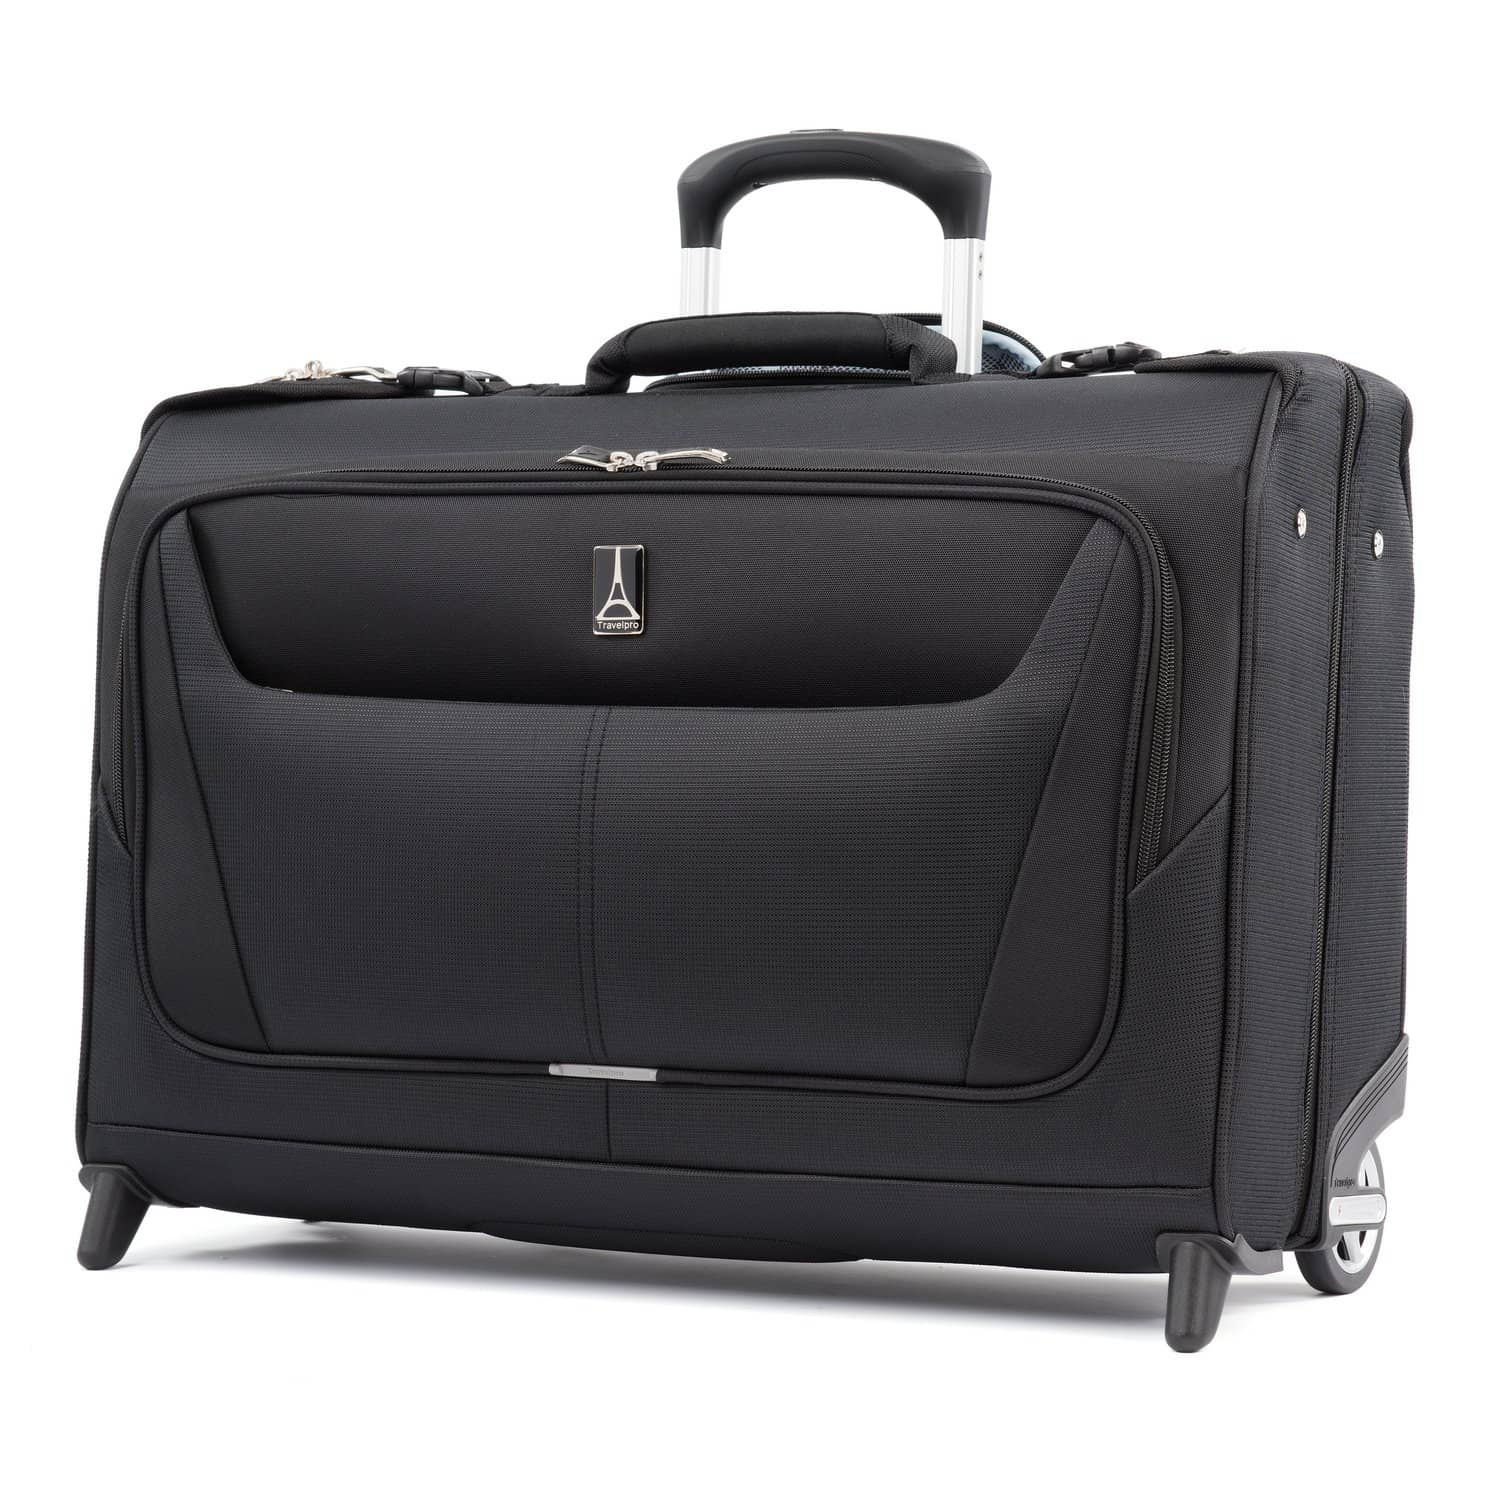 Travelpro Maxlite® 5 Carry-on Rolling Garment Bag BLACK